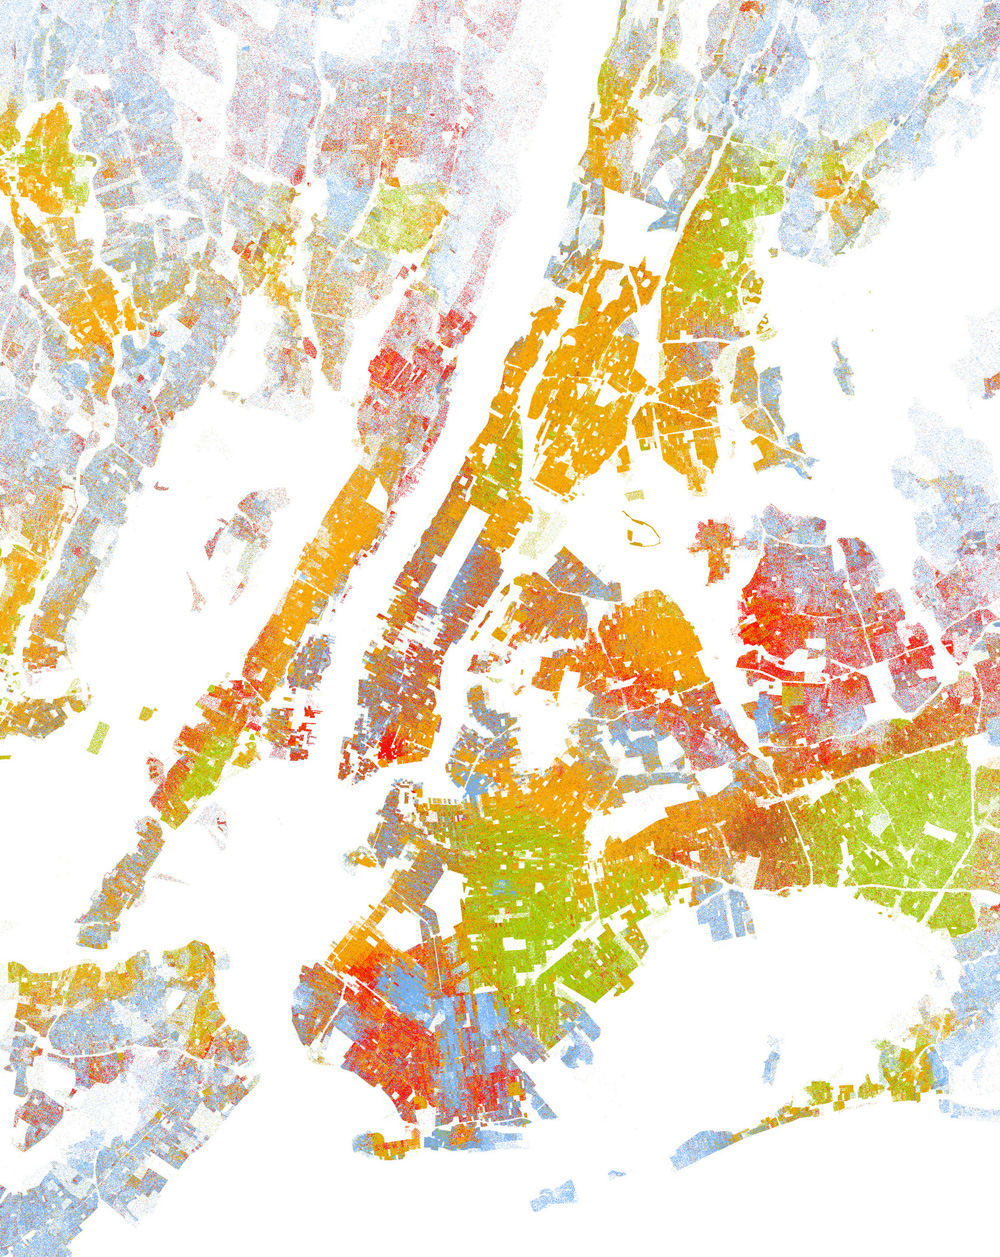 New York Racial Dot Map